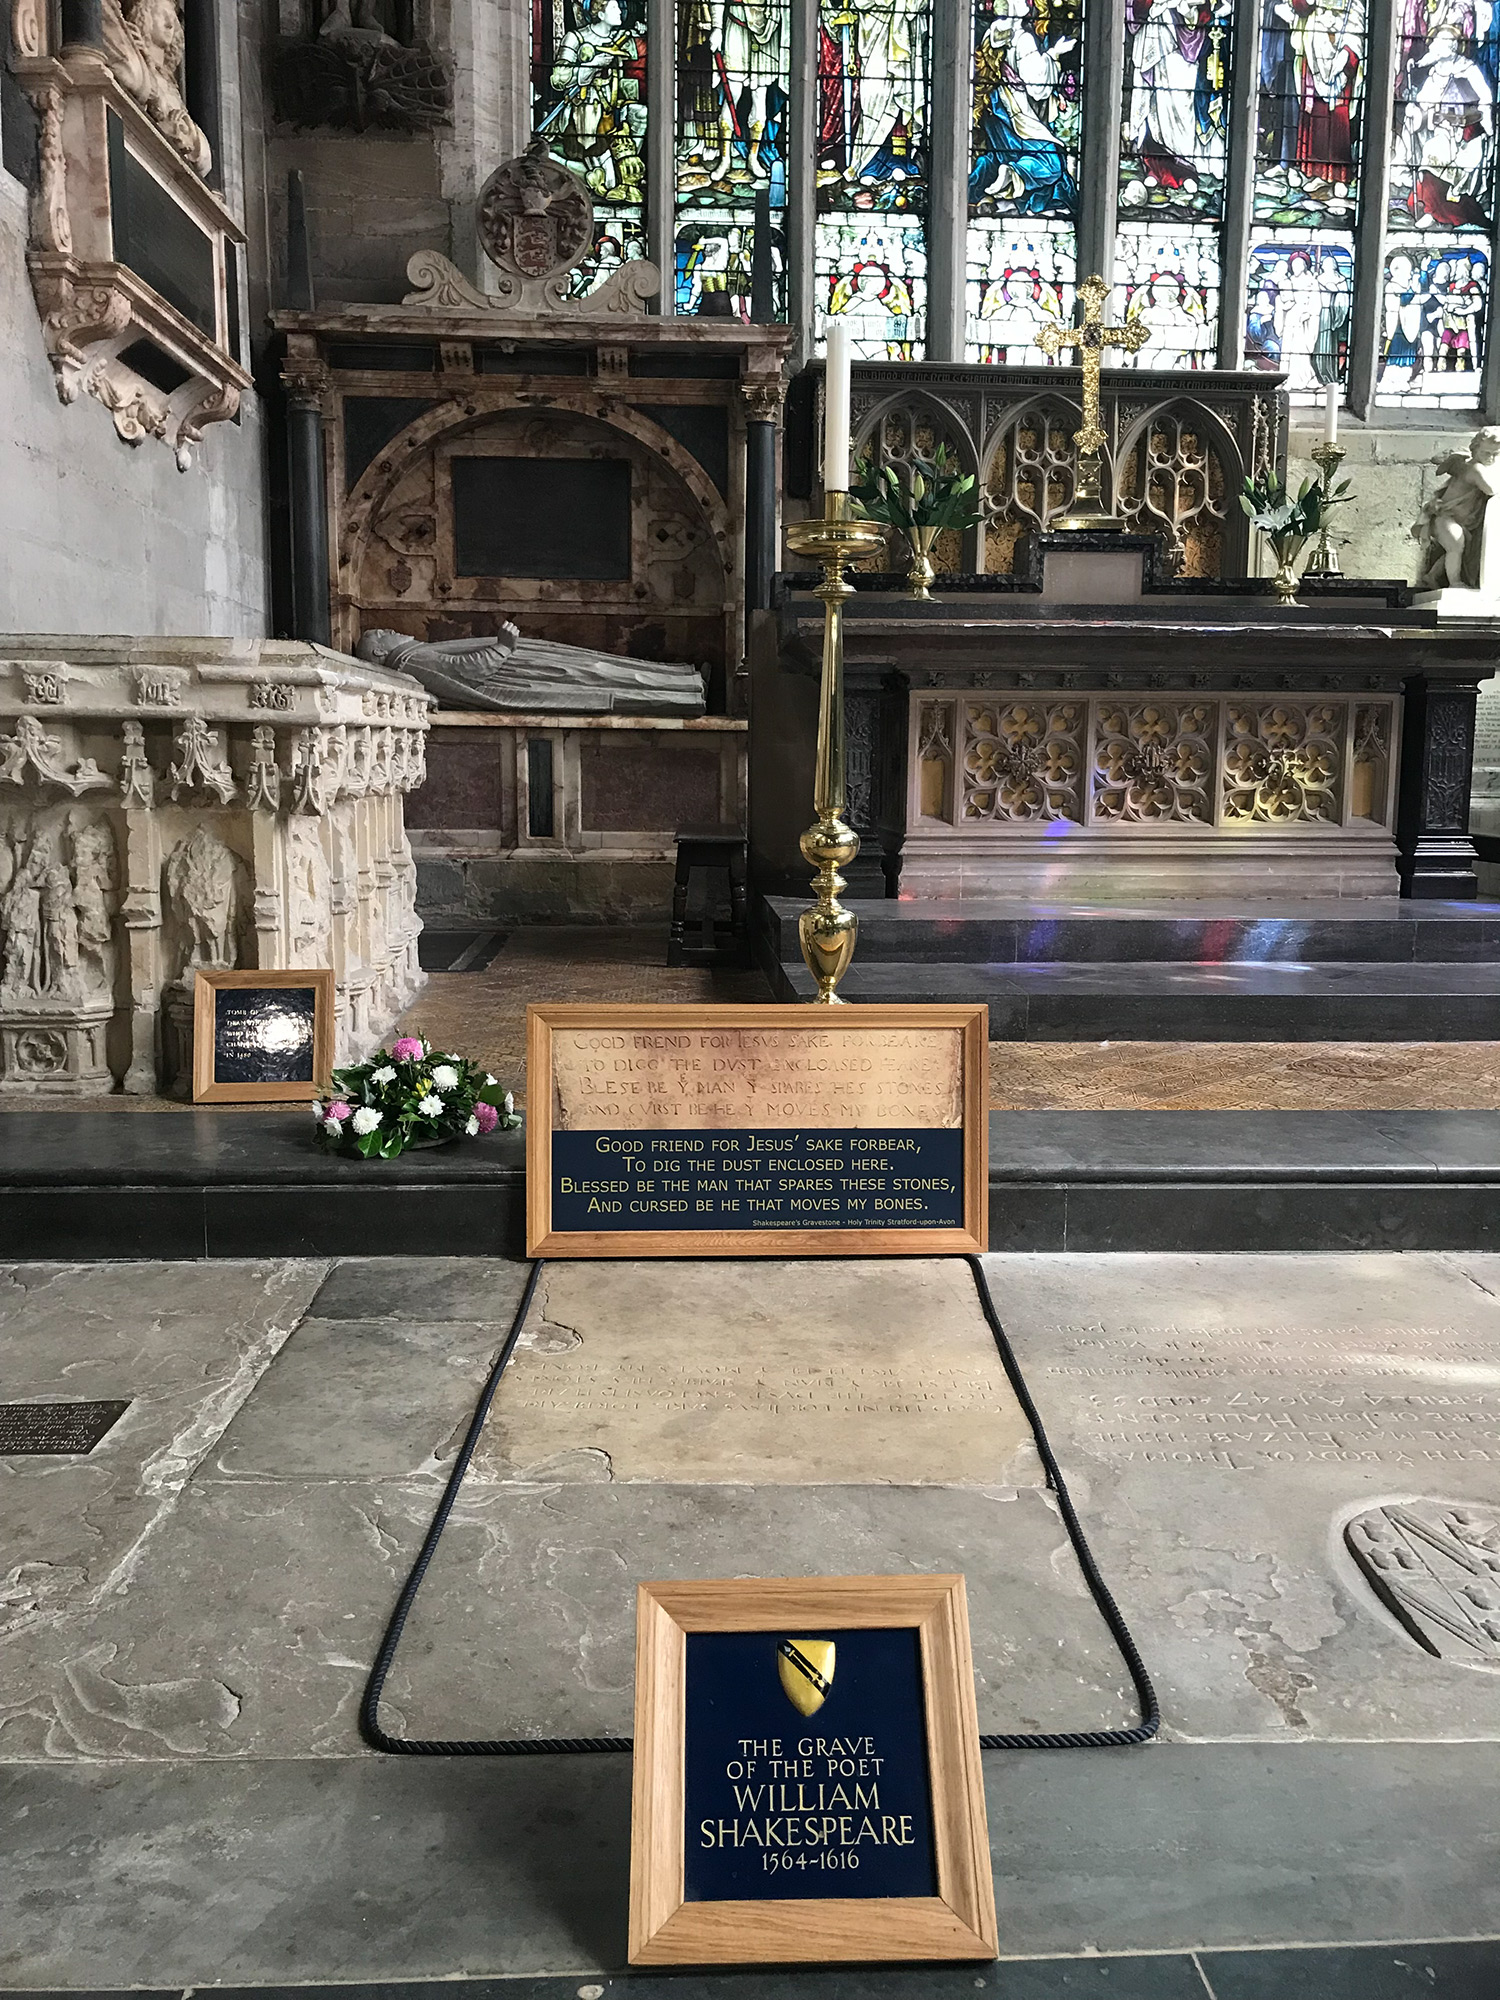 Shakespeare's grave, Holy Trinity Church, Stratford-upon-Avon